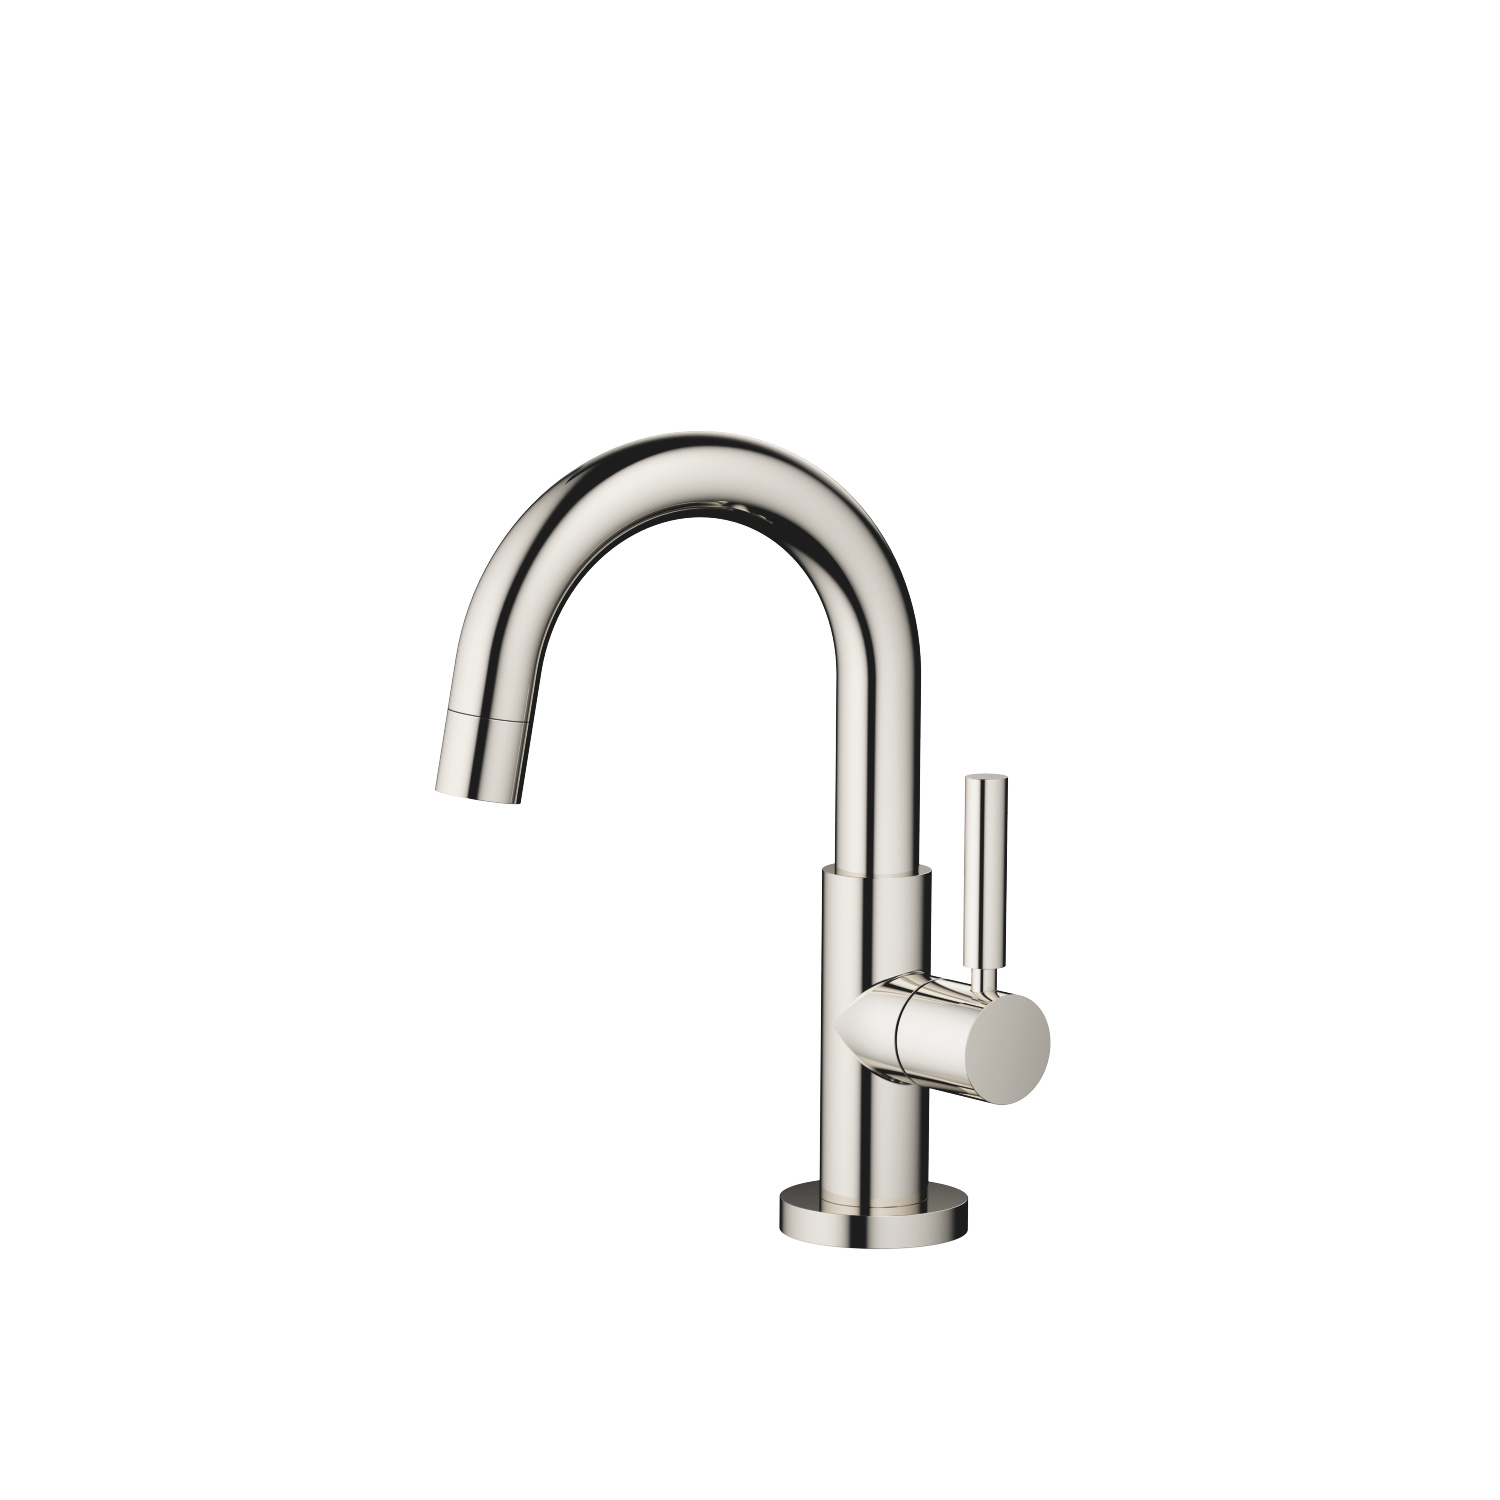 Pillar tap cold water - platinum